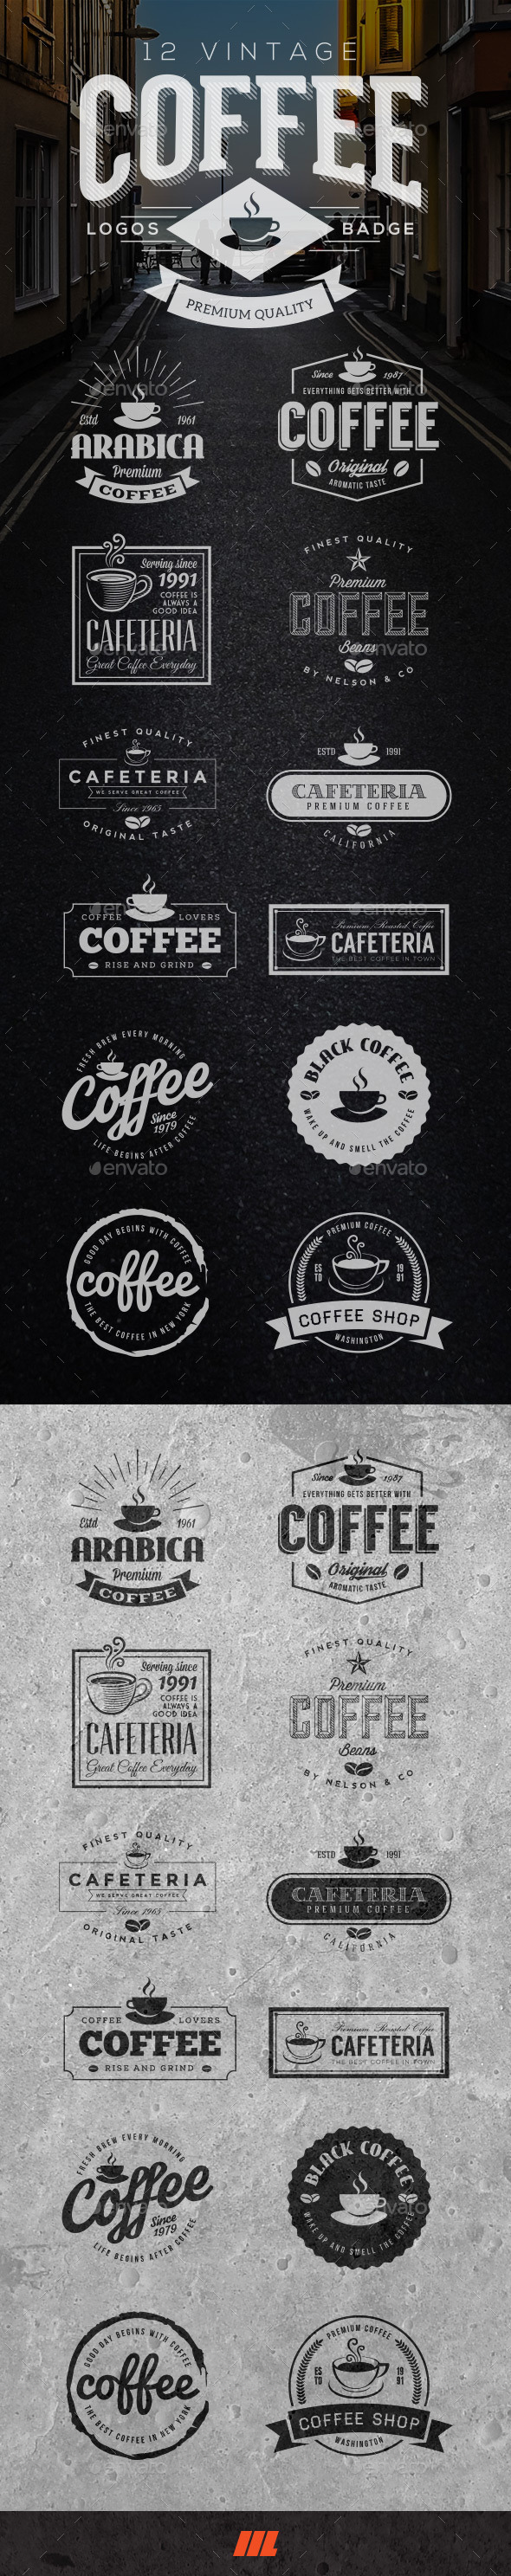 GraphicRiver 12 Retro Vintage Coffee Logo 11452453